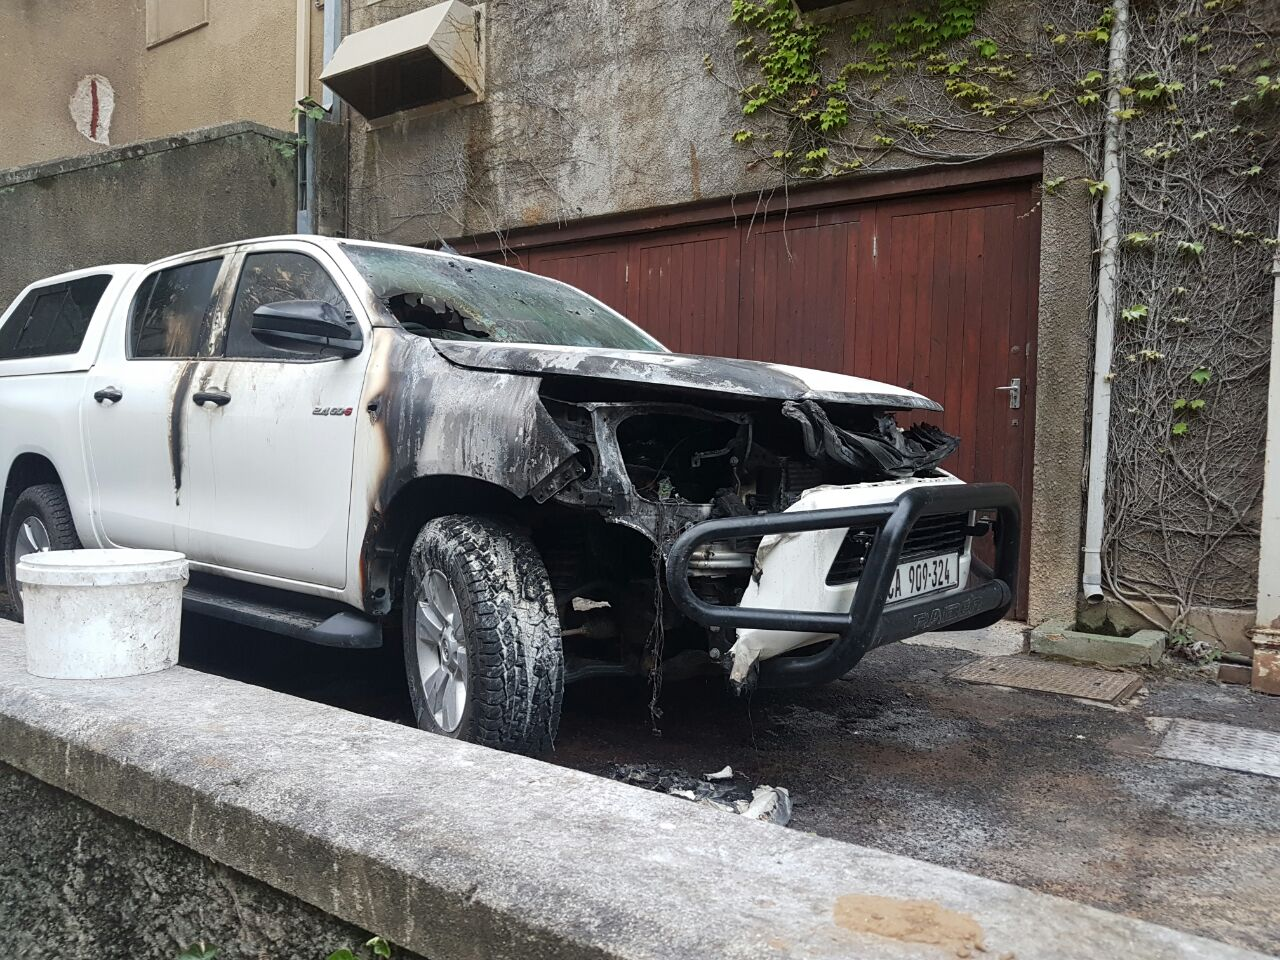 new bakkie burnt during fees must fall protests